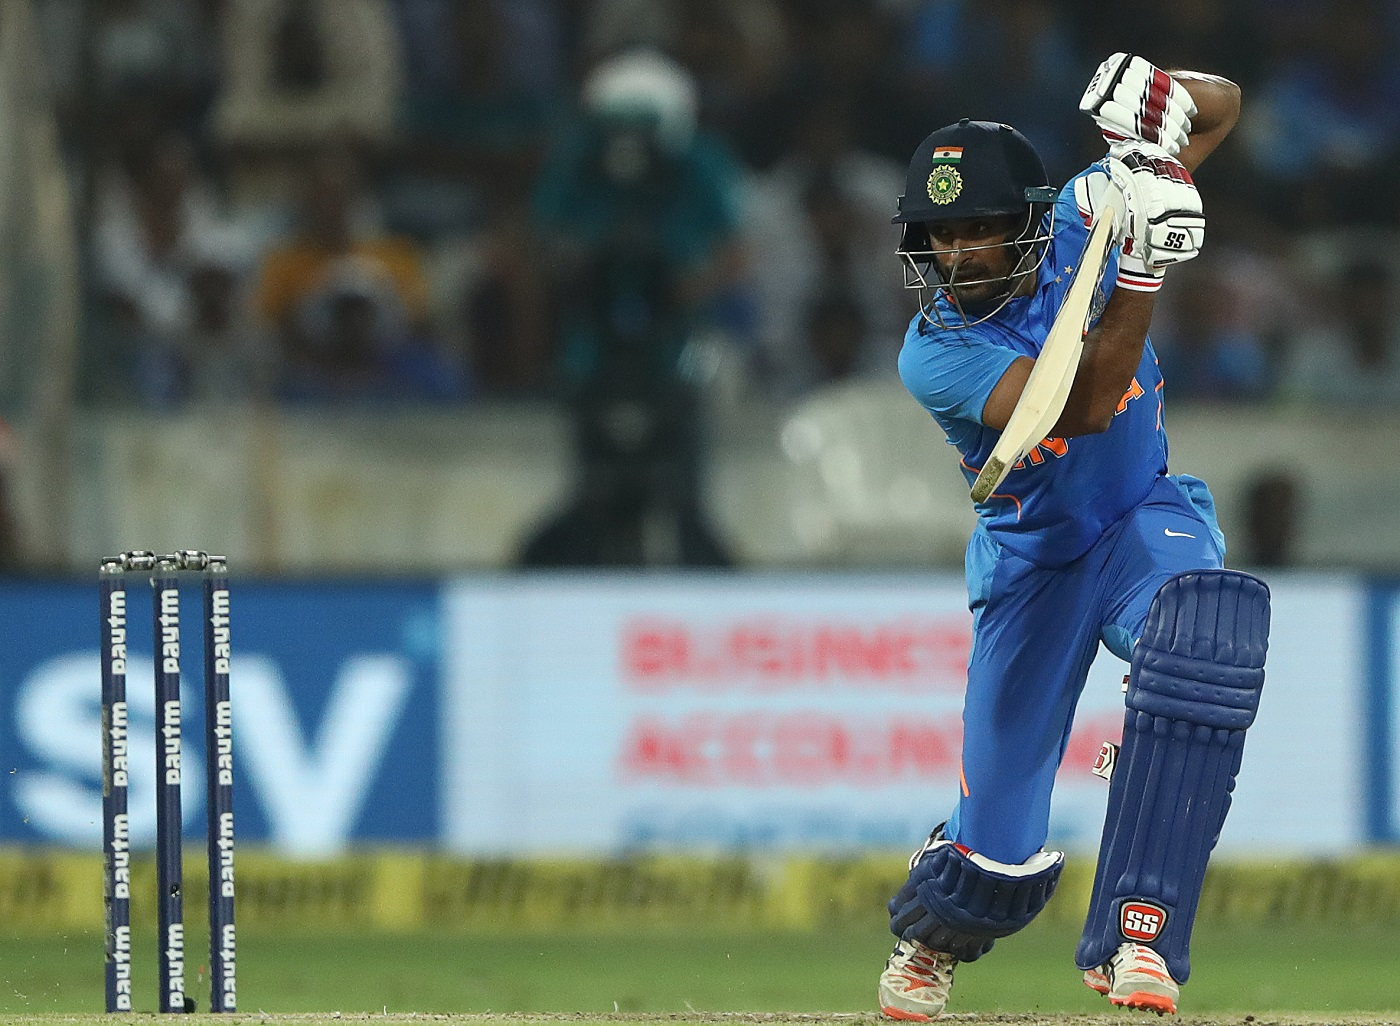 Ambati Rayudu Name as the Captain of this Team, after retirement U-Turn